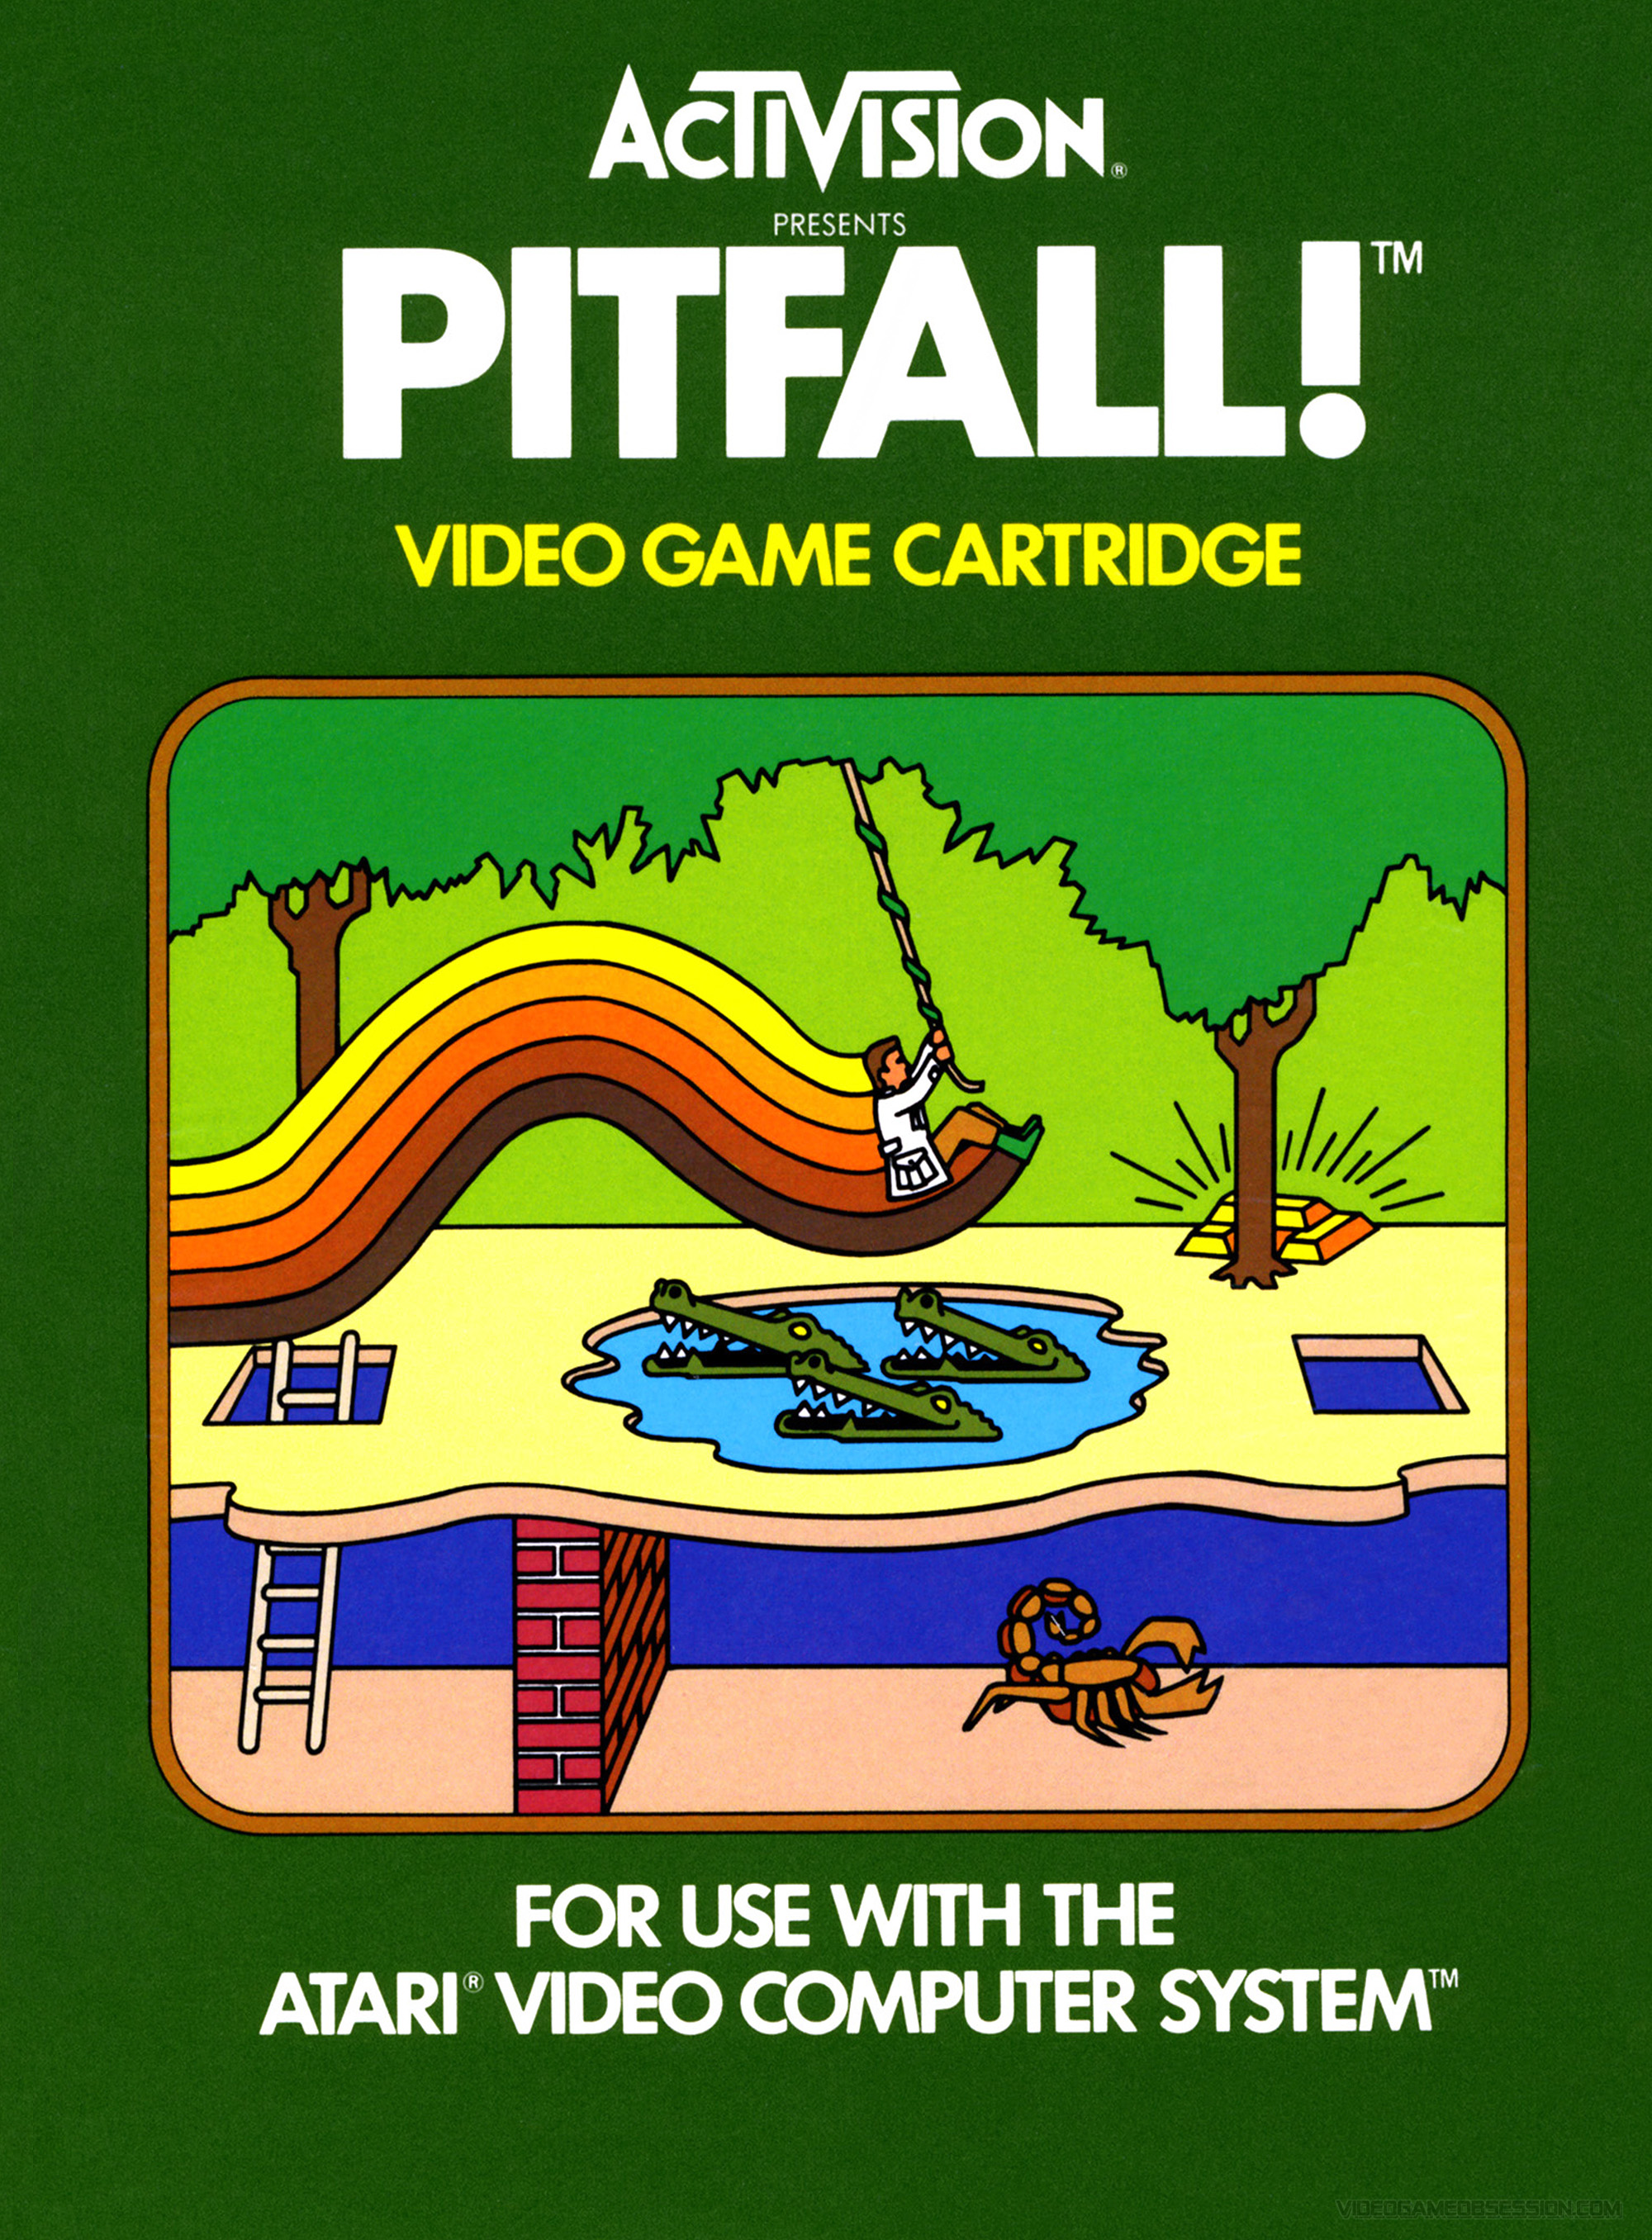 Atari 2600 Vcs Mr Do Scans Dump Download: Atari 2600 Collection @ Video Game Obsession (c) Matthew